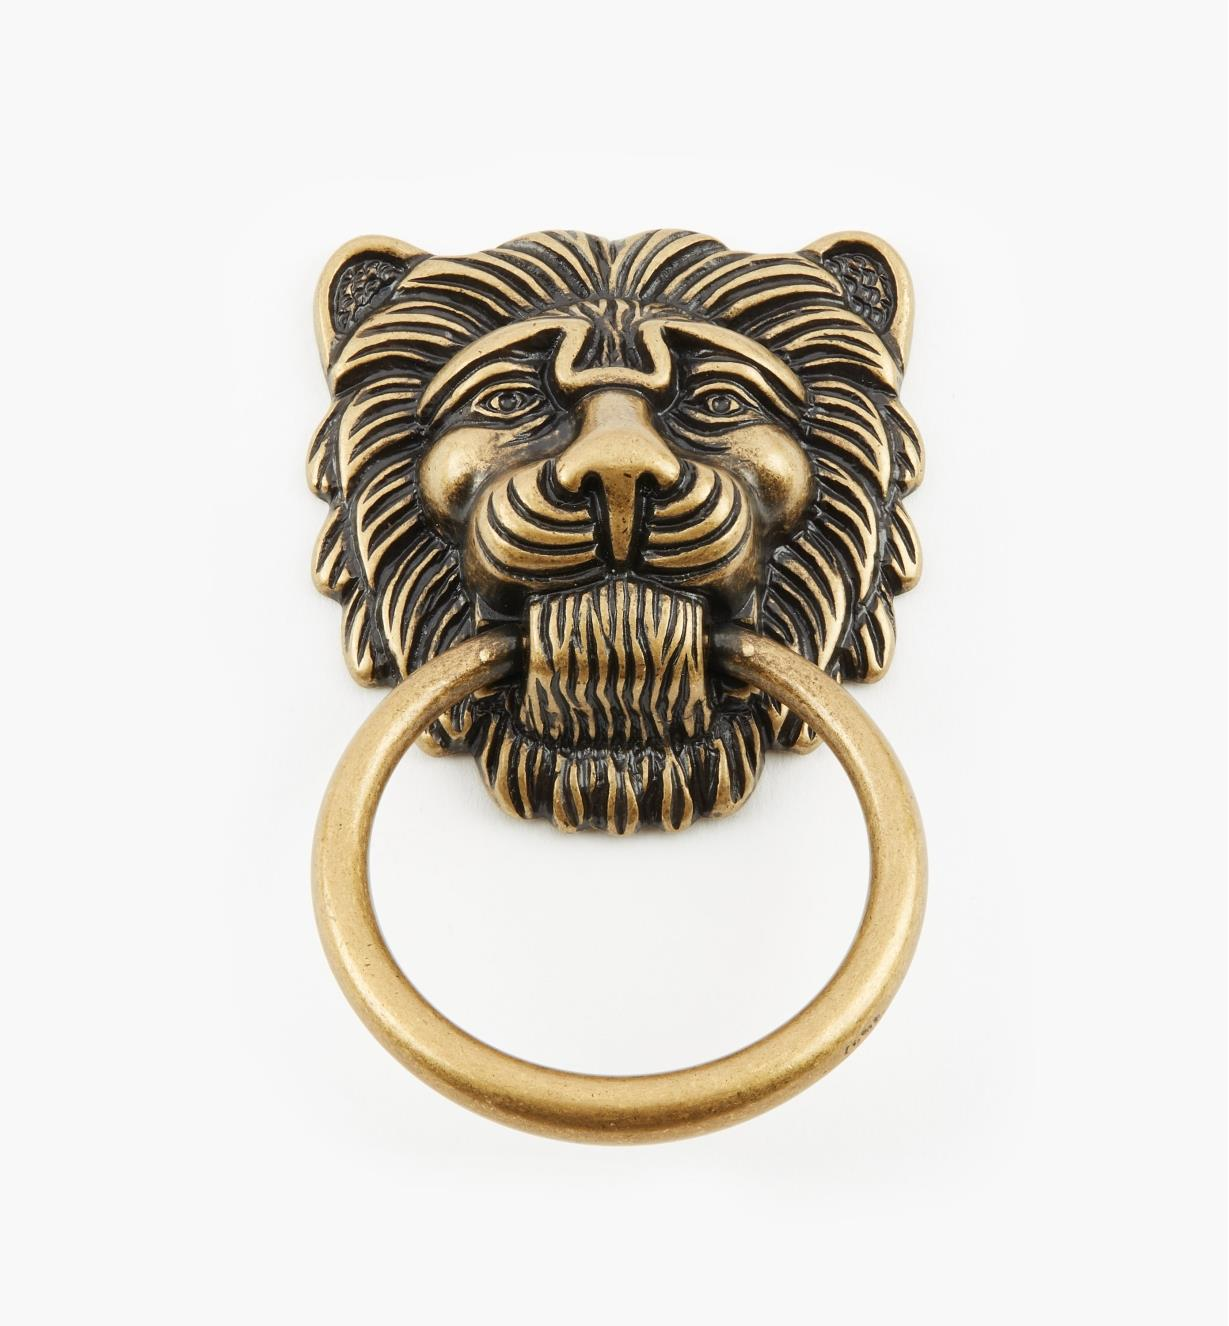 01A7387 - Lg. Lion's Head Ring Pull